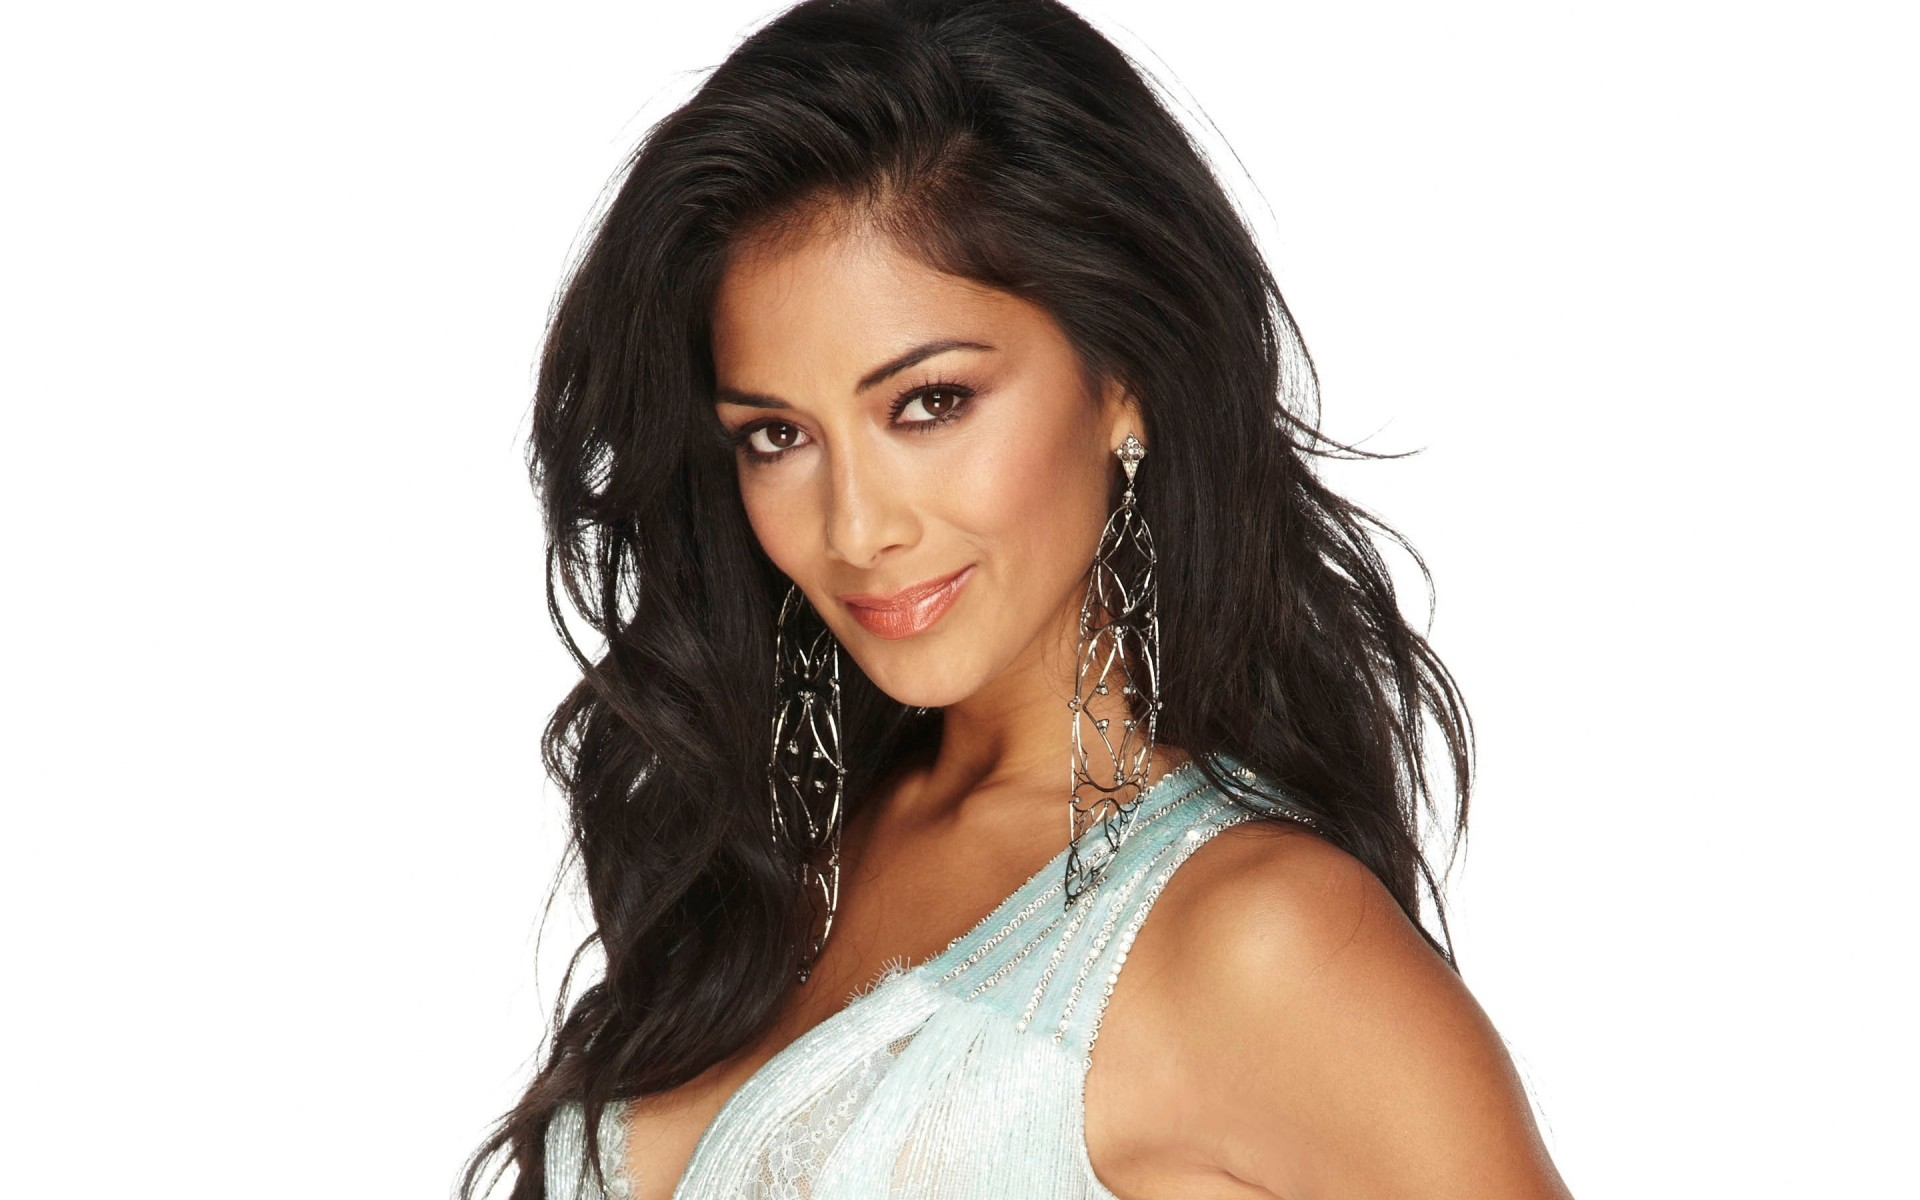 Anime Girls Wallpaper 4k Nicole Scherzinger 4k 2016 Wallpapers Hd Wallpapers Id